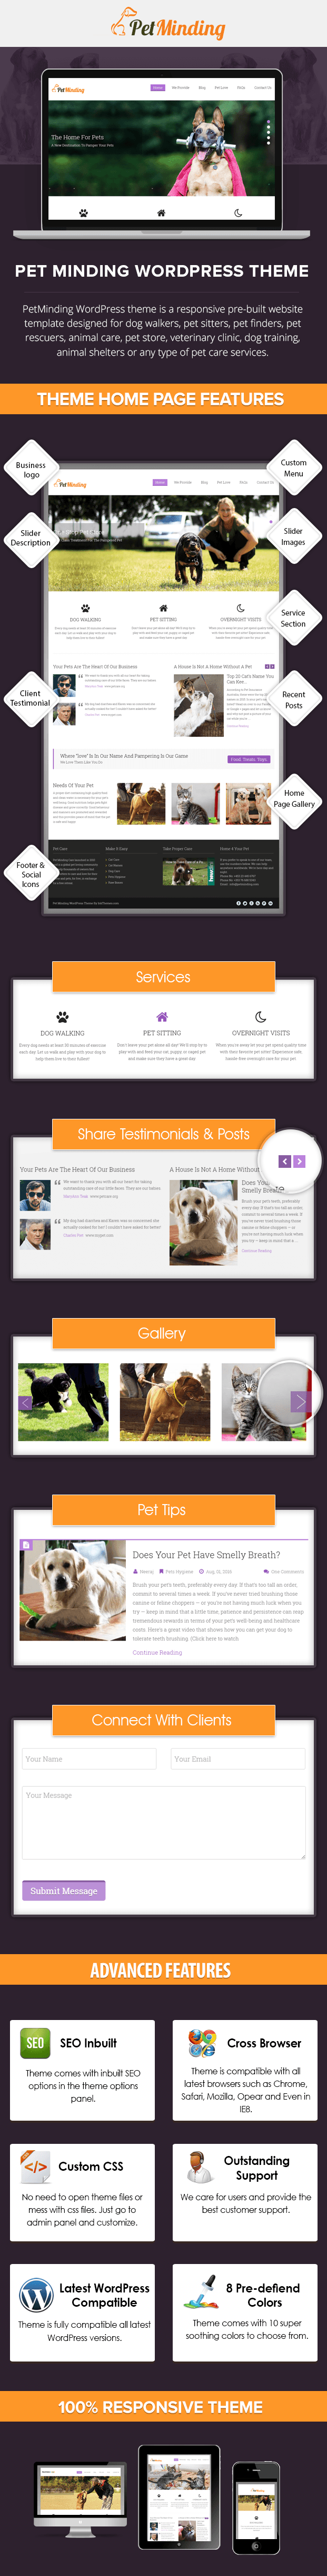 pet-minding-wordpress-theme-sales-page